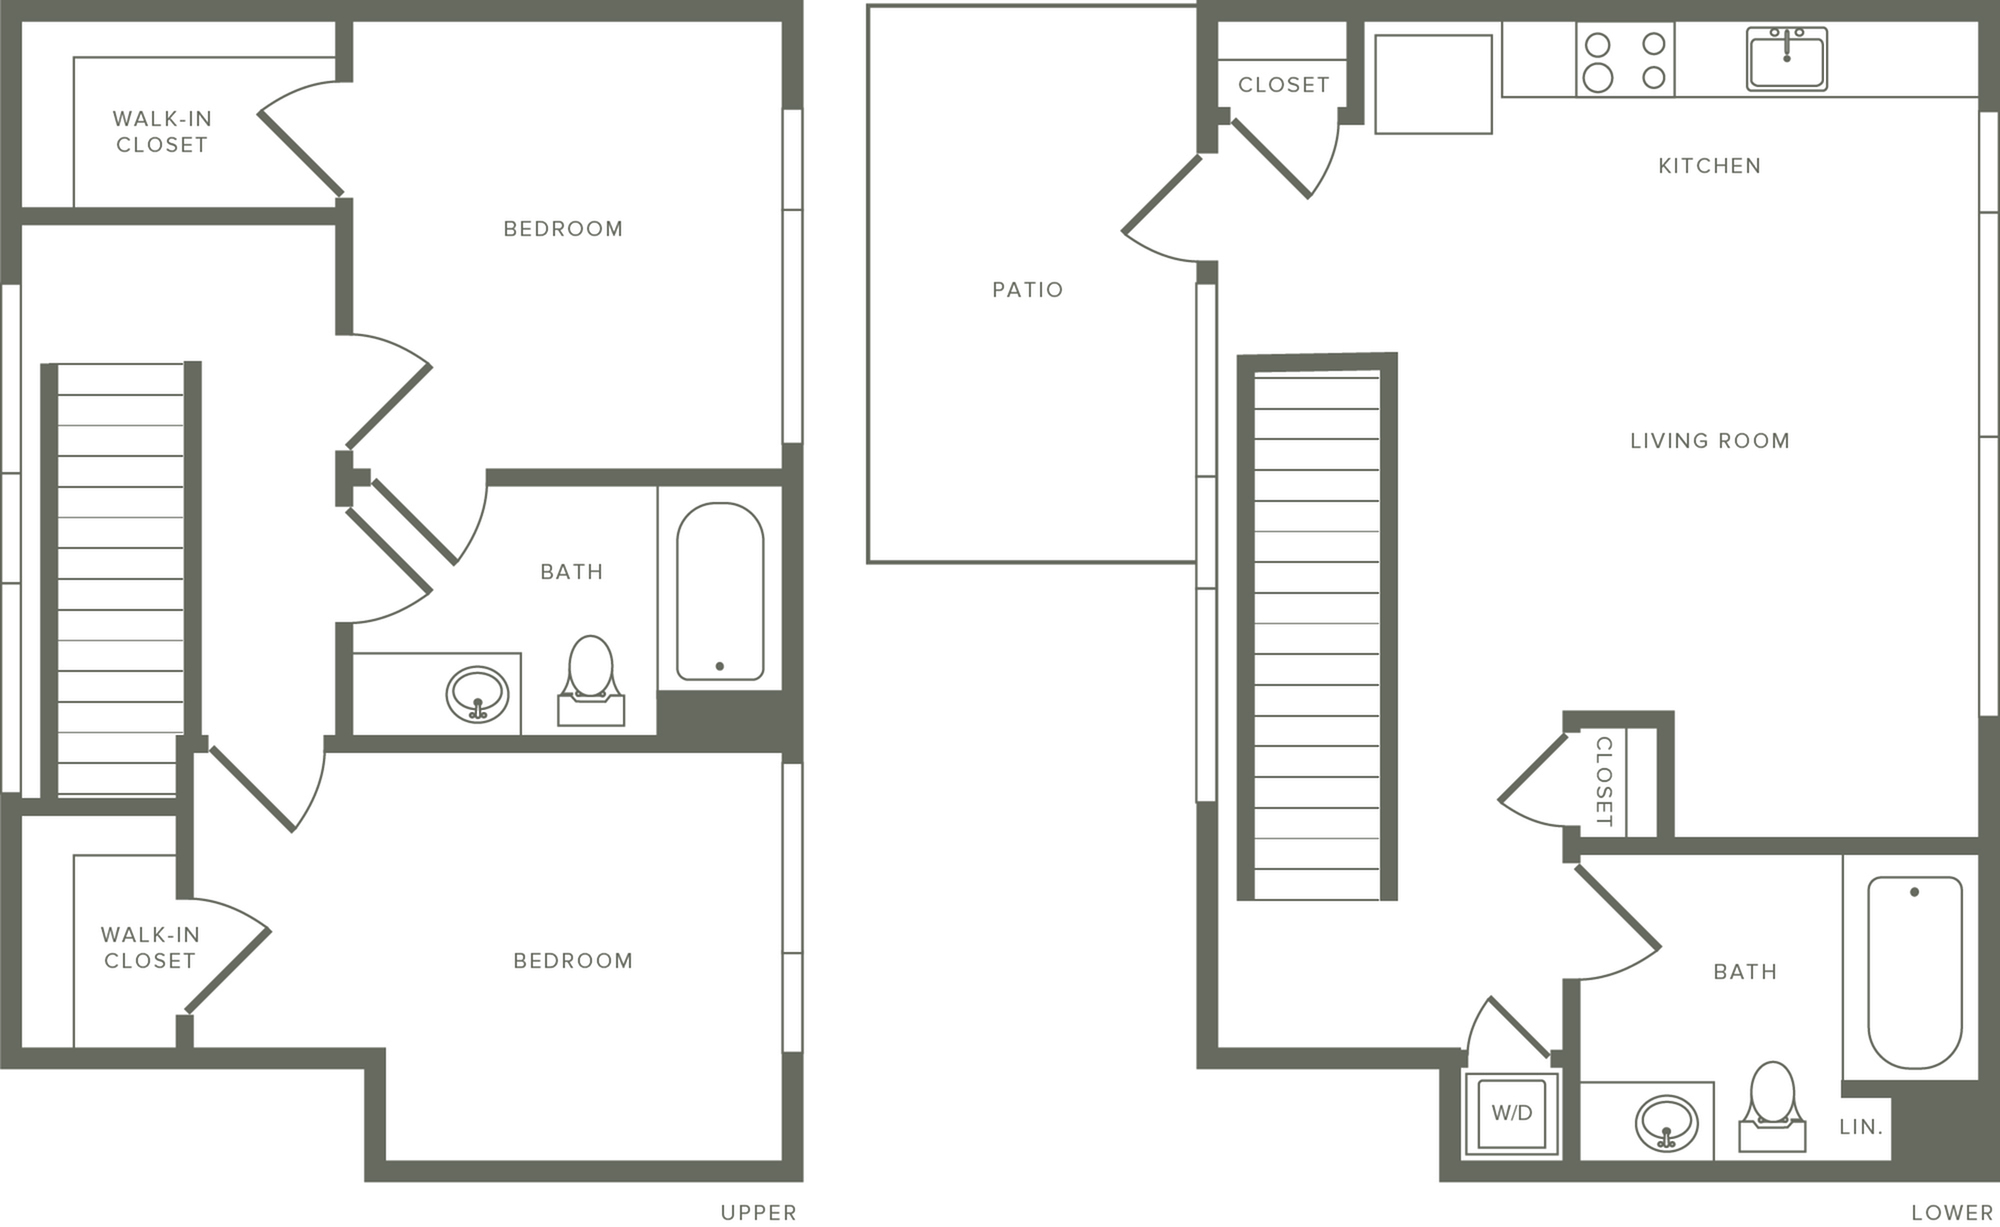 1,053 square foot two bedroom two bath apartment two story penthouse floorplan image